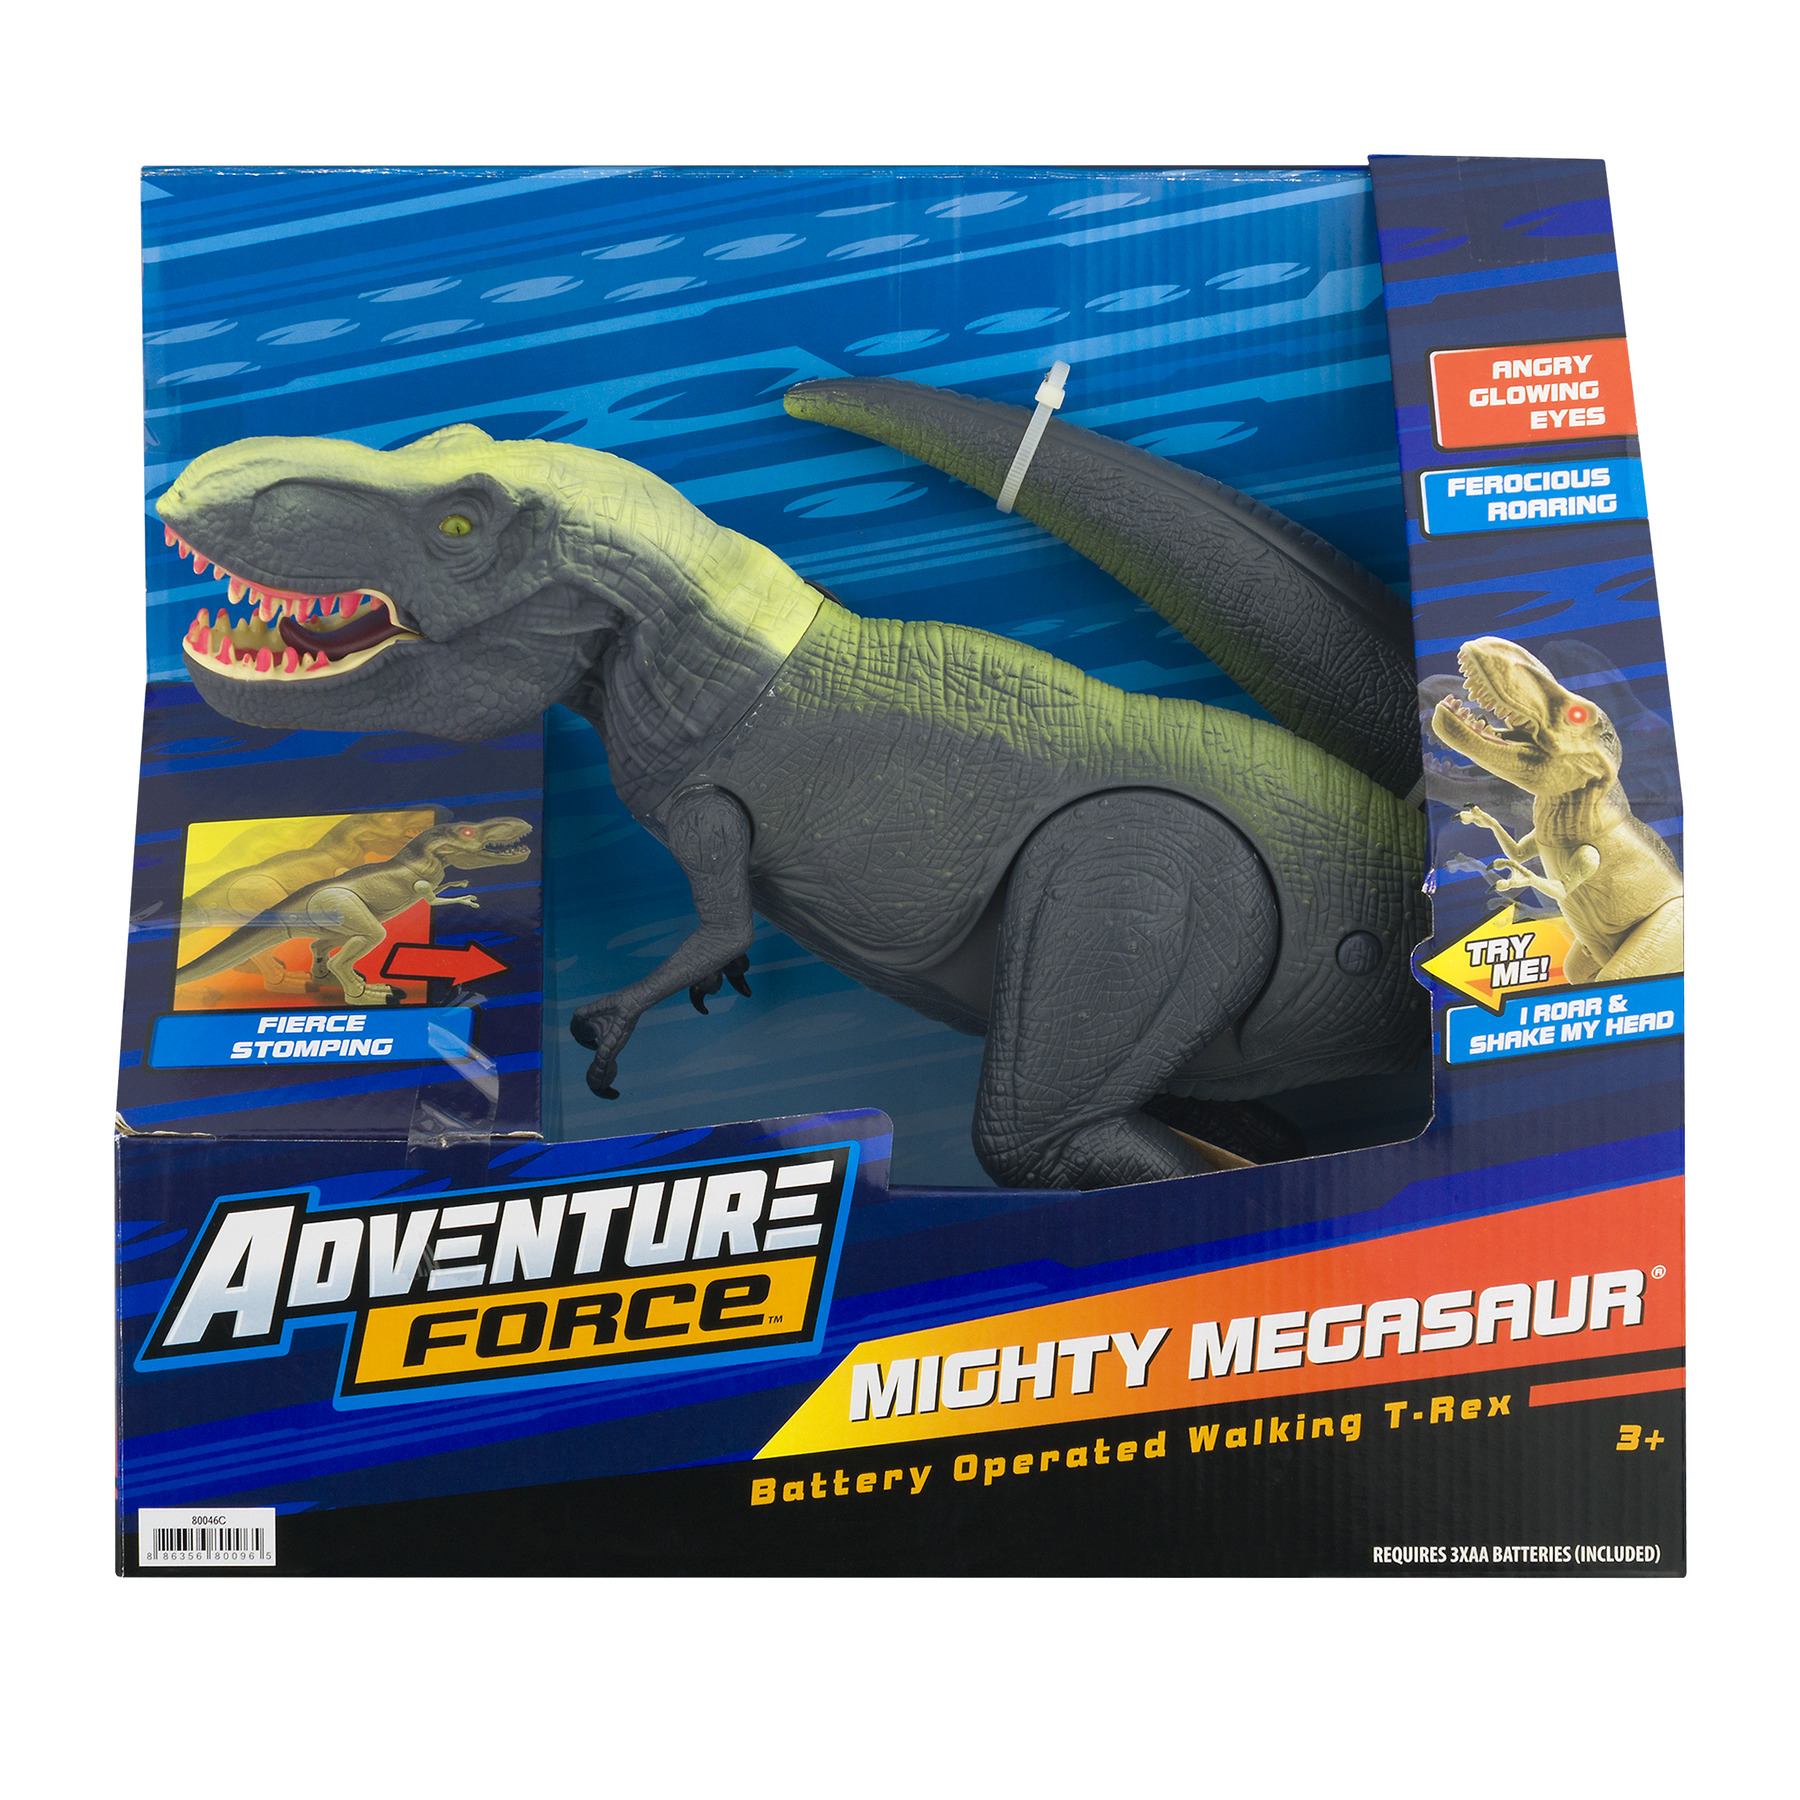 Adventure Force Mighty Megasaur Battery-Operated Walking T-Rex, Green